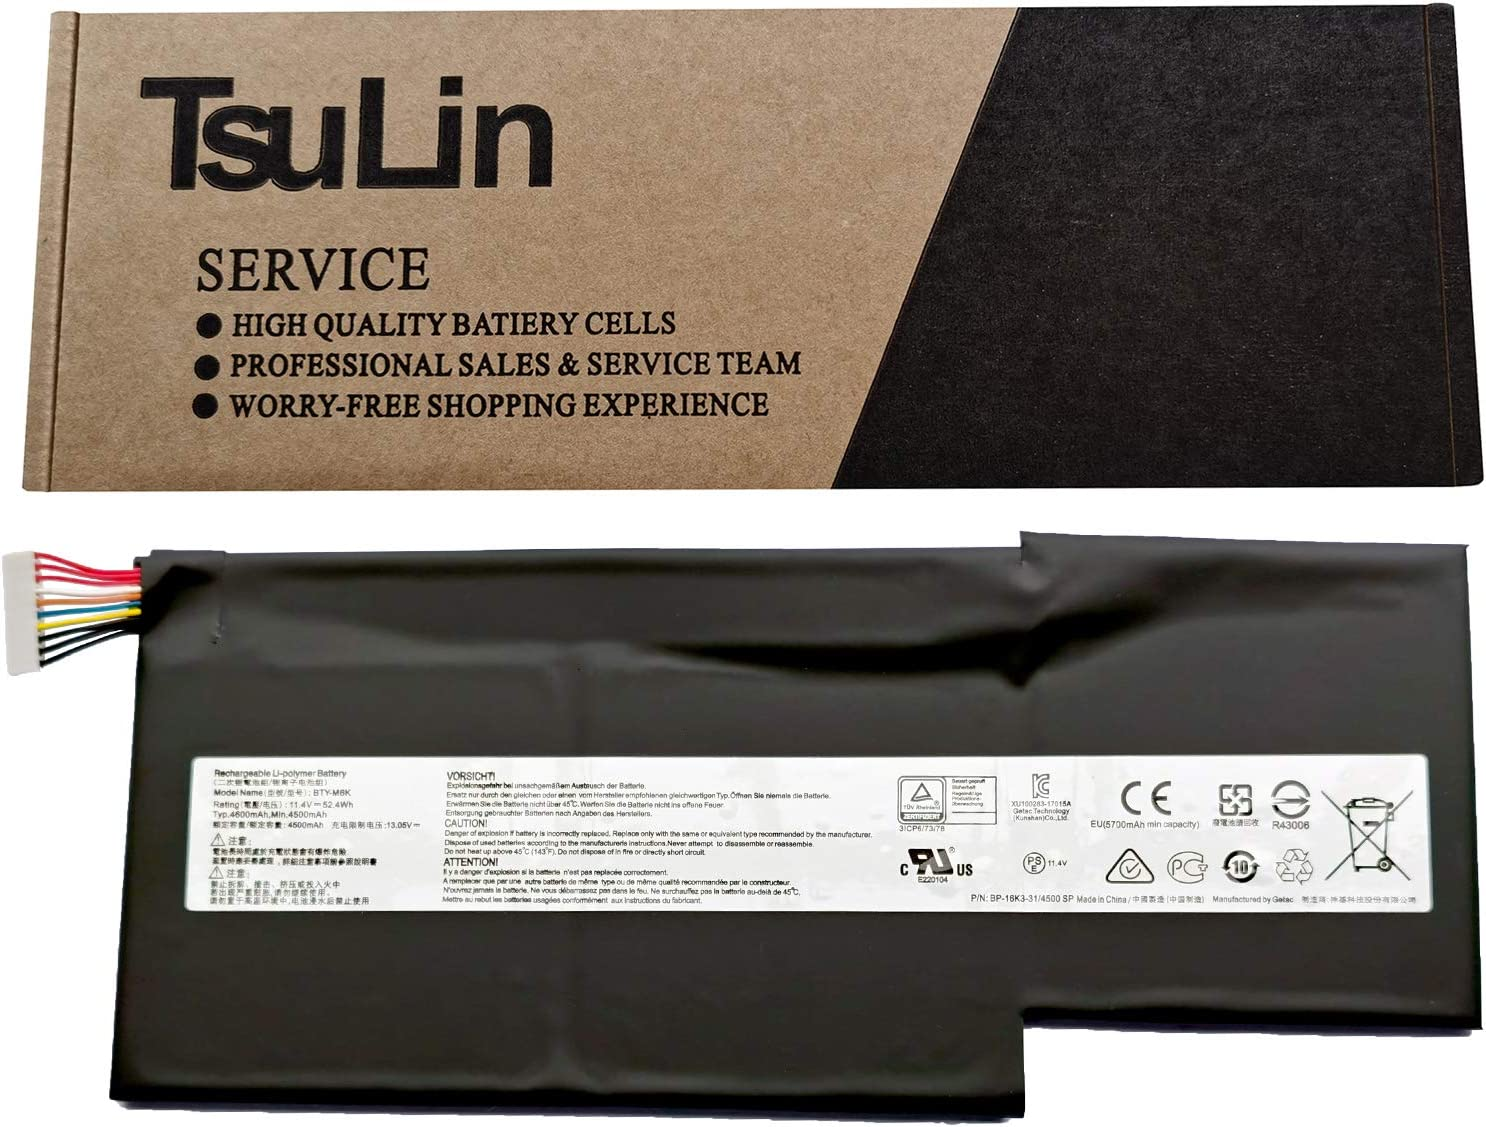 TsuLin BTY-M6K Laptop Battery Replacement for MSI Stealth Pro GS63VR 7RG 7RG-005 GF63 8RD 8RD-031TH 8RC 8RC-034CZ GF75 Thin 3RD 8RC 9SC 9SC-088CN Series MS-17B4 MS-16K3 11.4V 52.4Wh 4600mAh 3-Cell